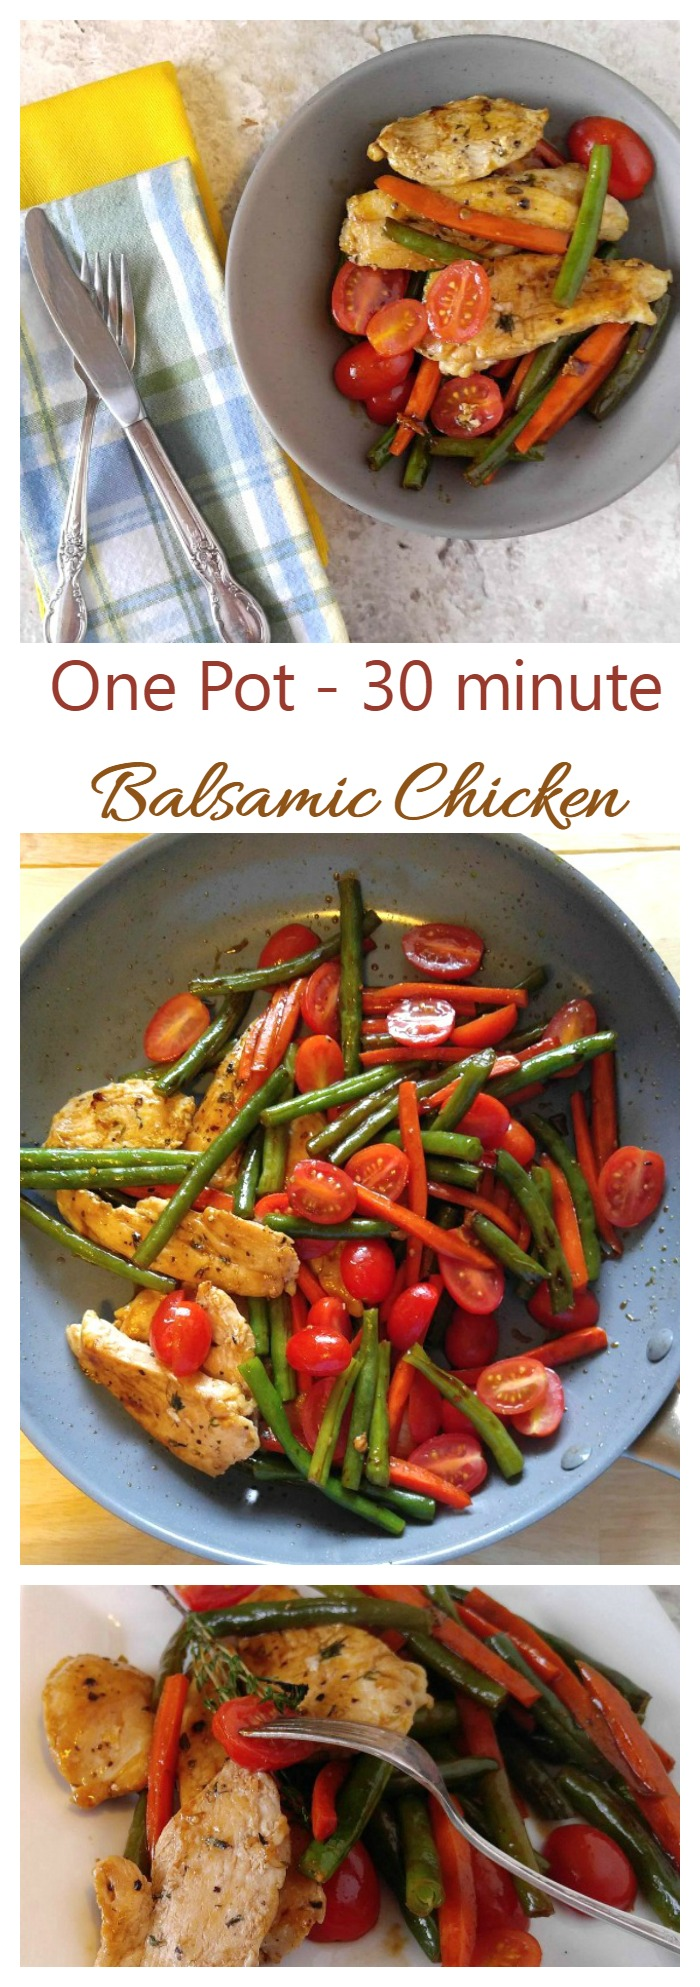 This One pot Balsamic Chicken is ready in 30 minutes. It has a lovely mild sauce that is not too tart and not too sweet. Perfect for a busy weeknight.